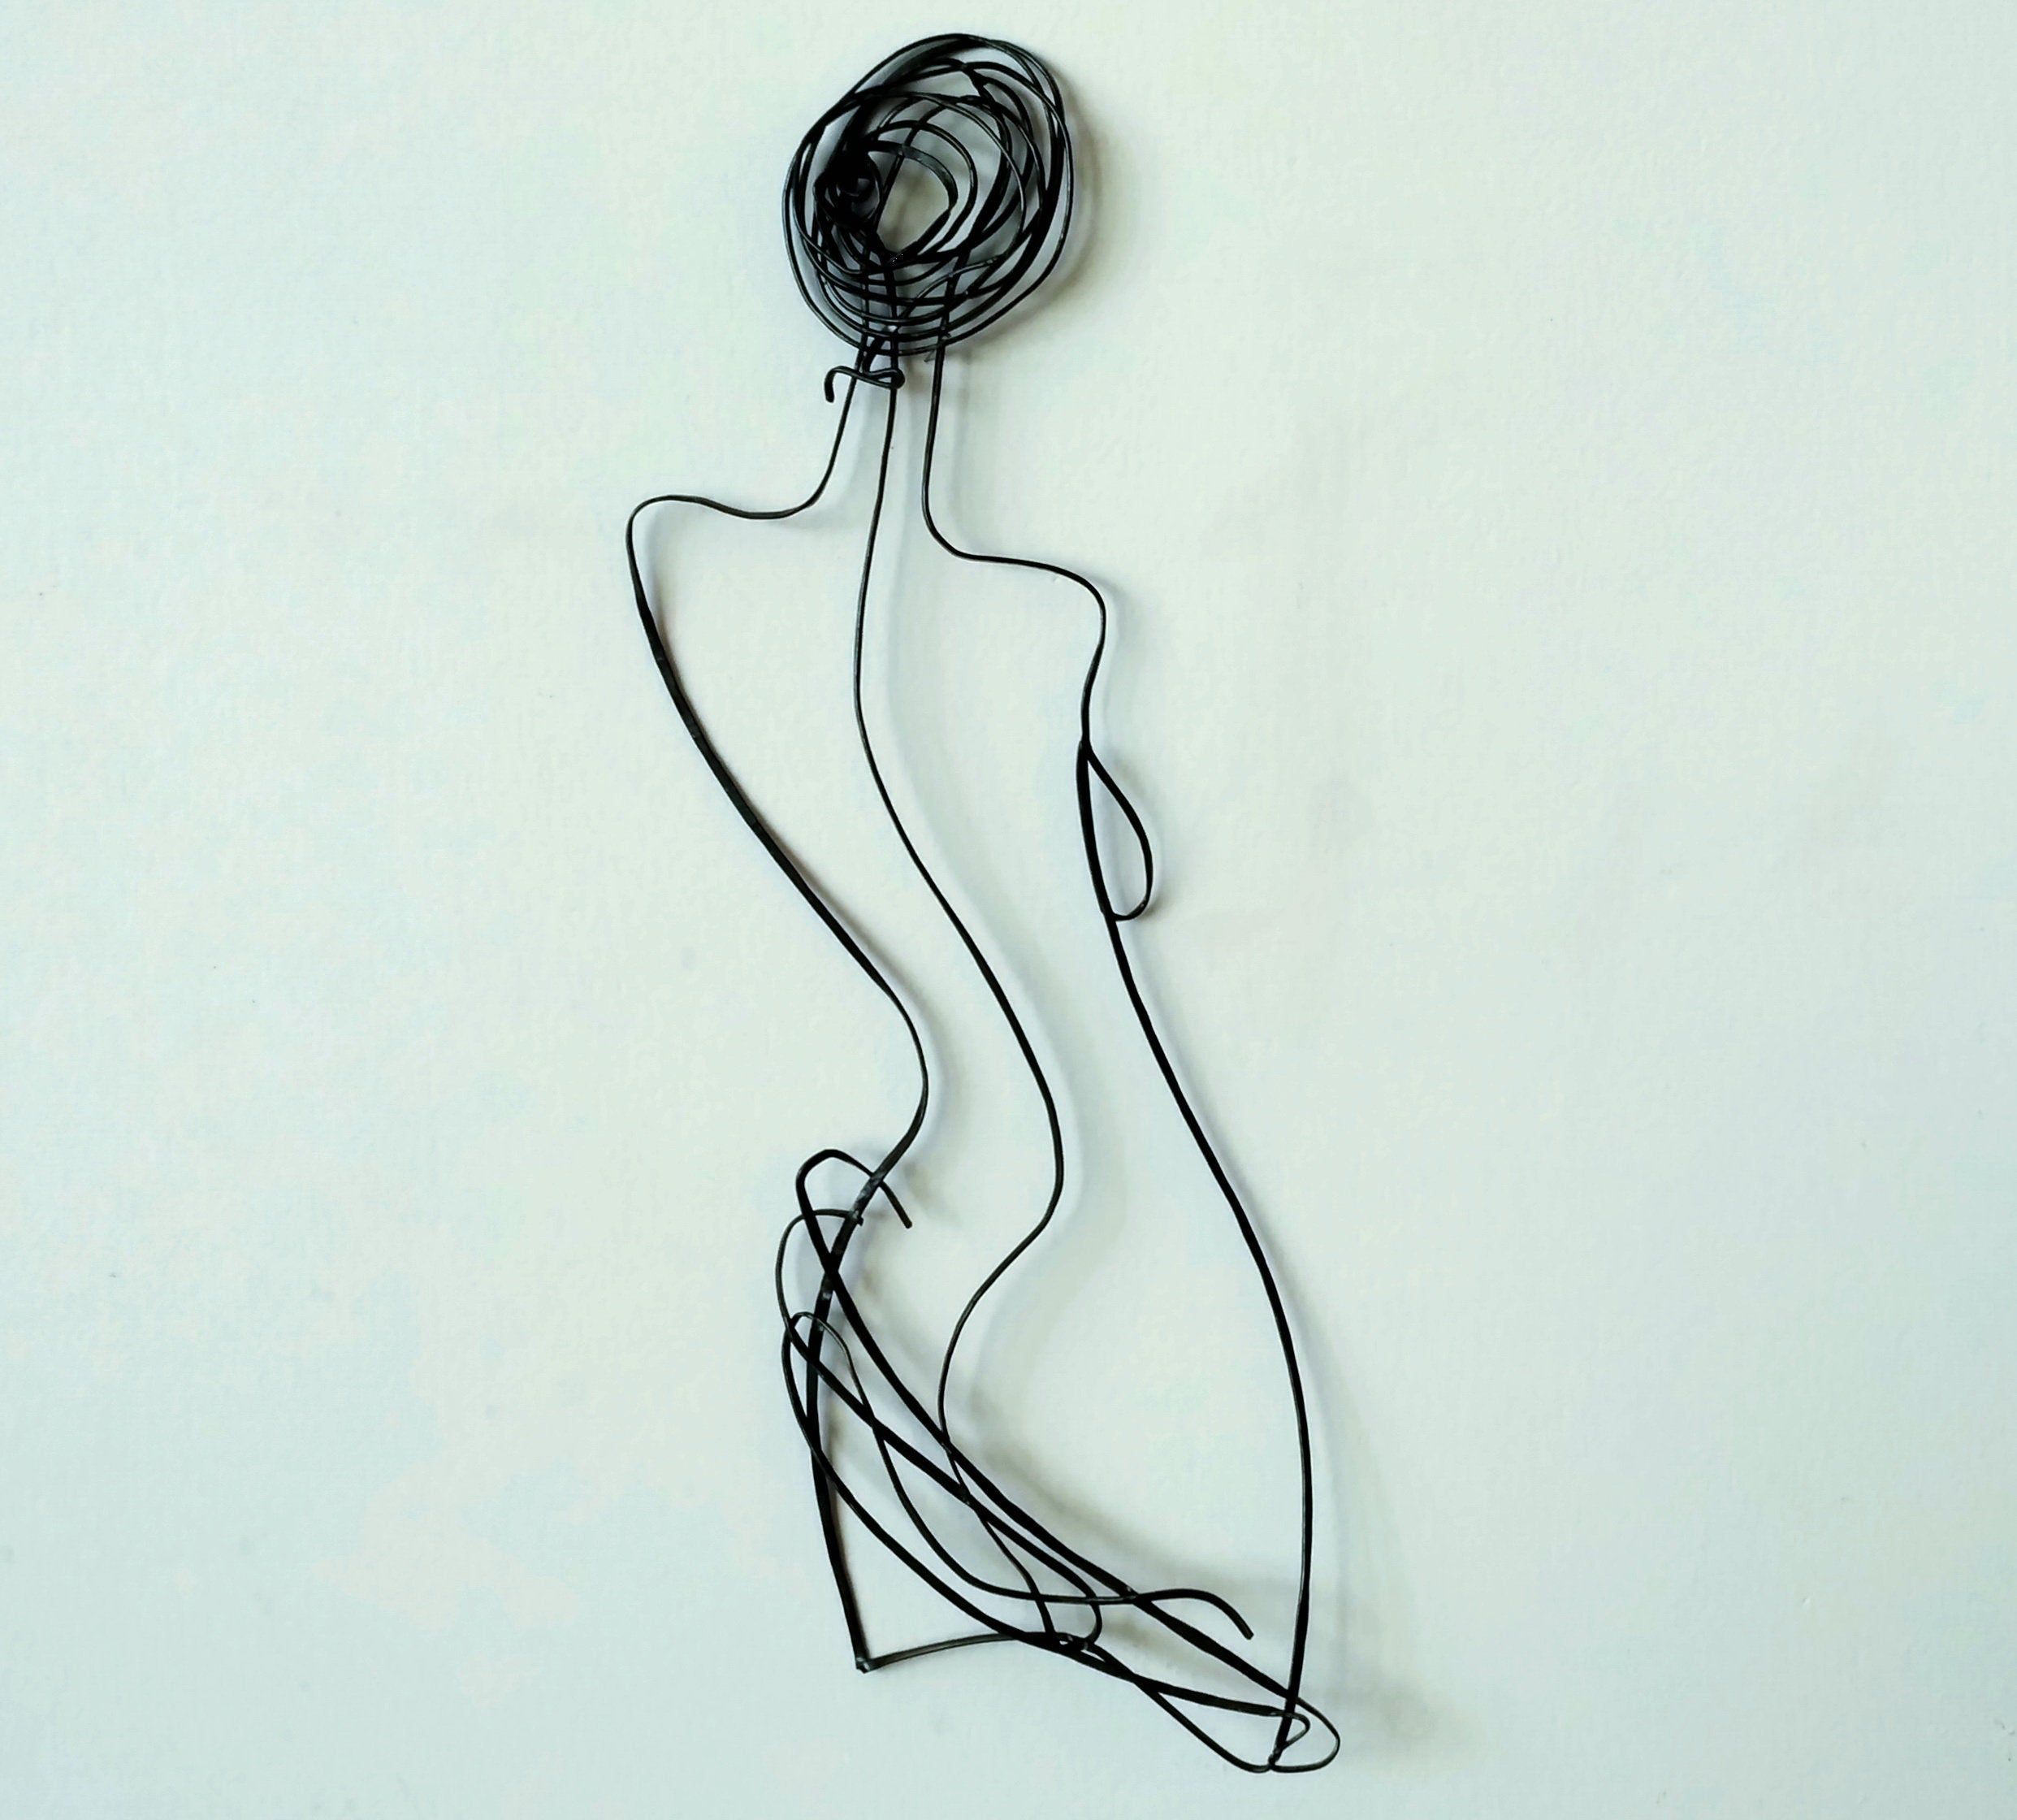 pin on wire  pinterest